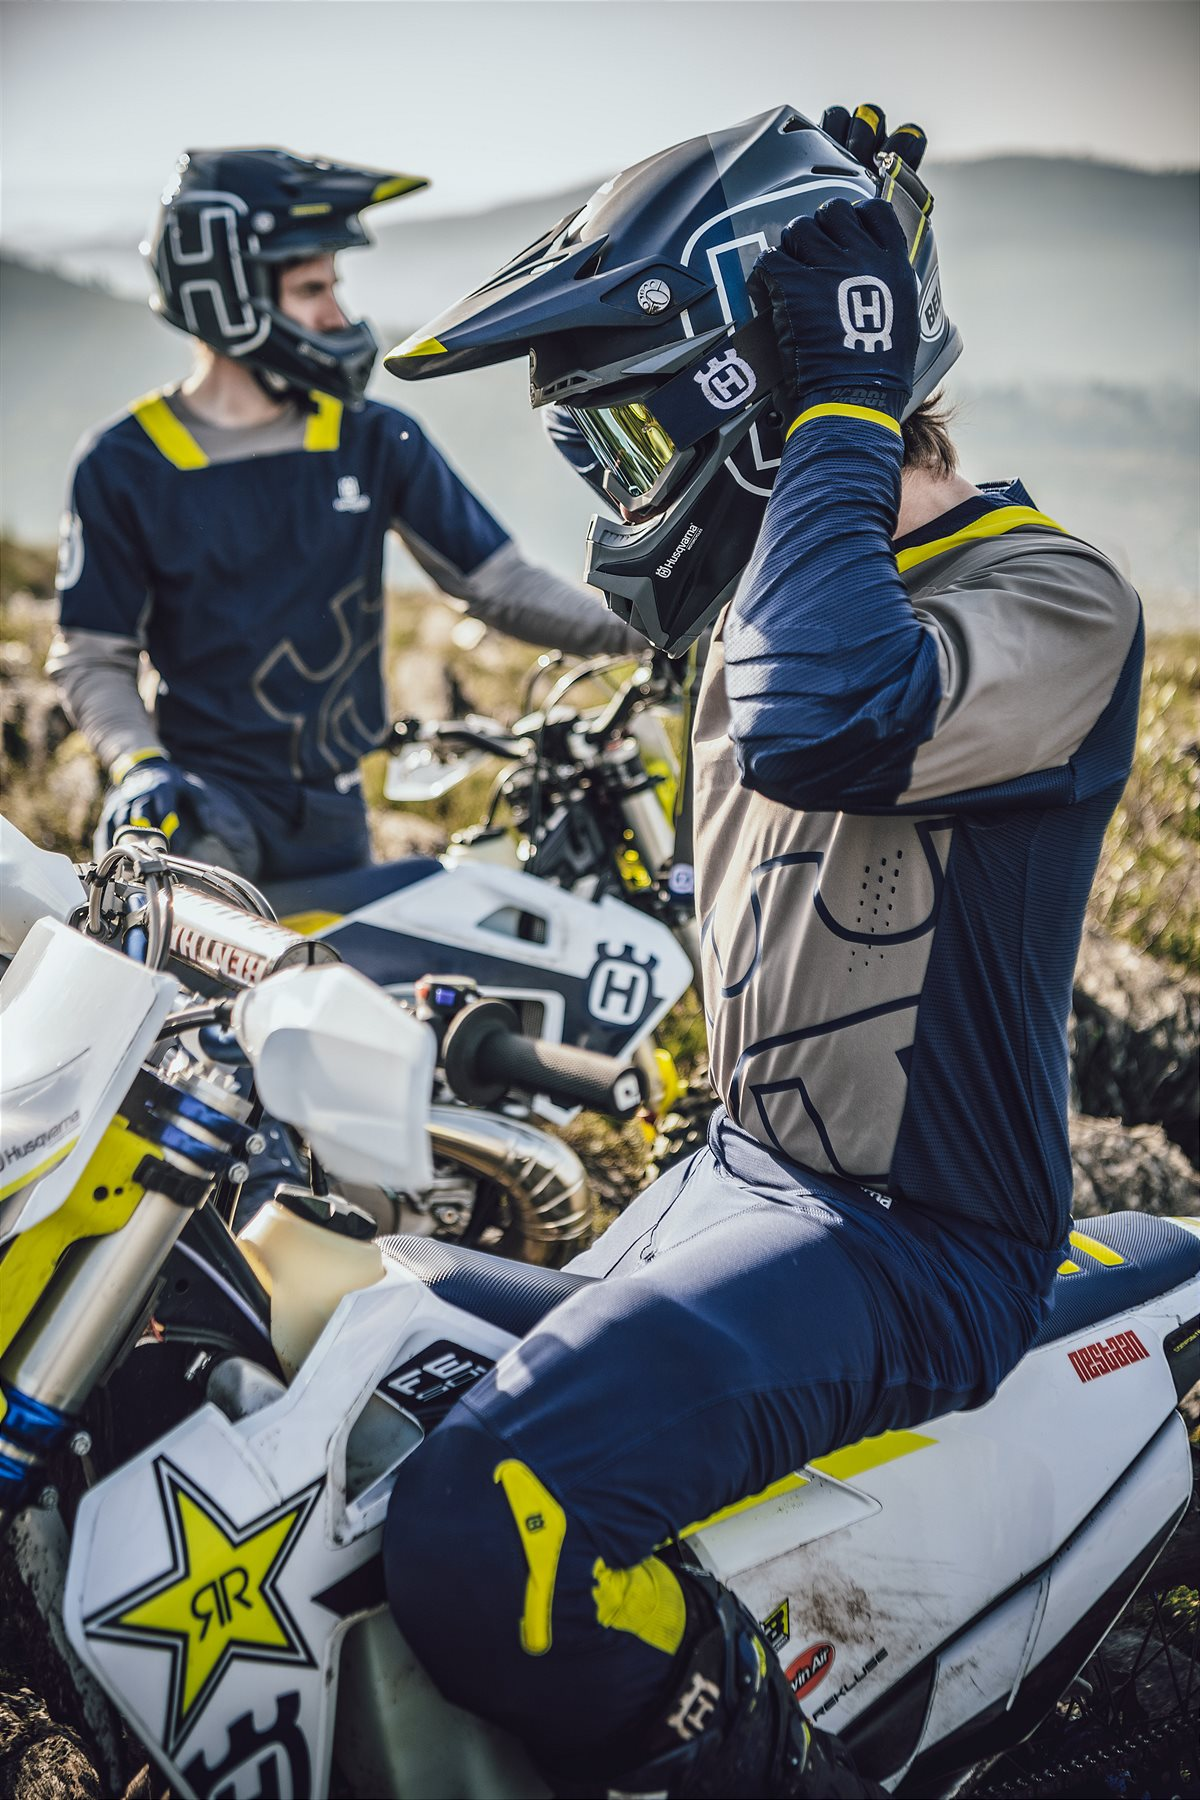 Functional Offroad Apparel 2020  (2)